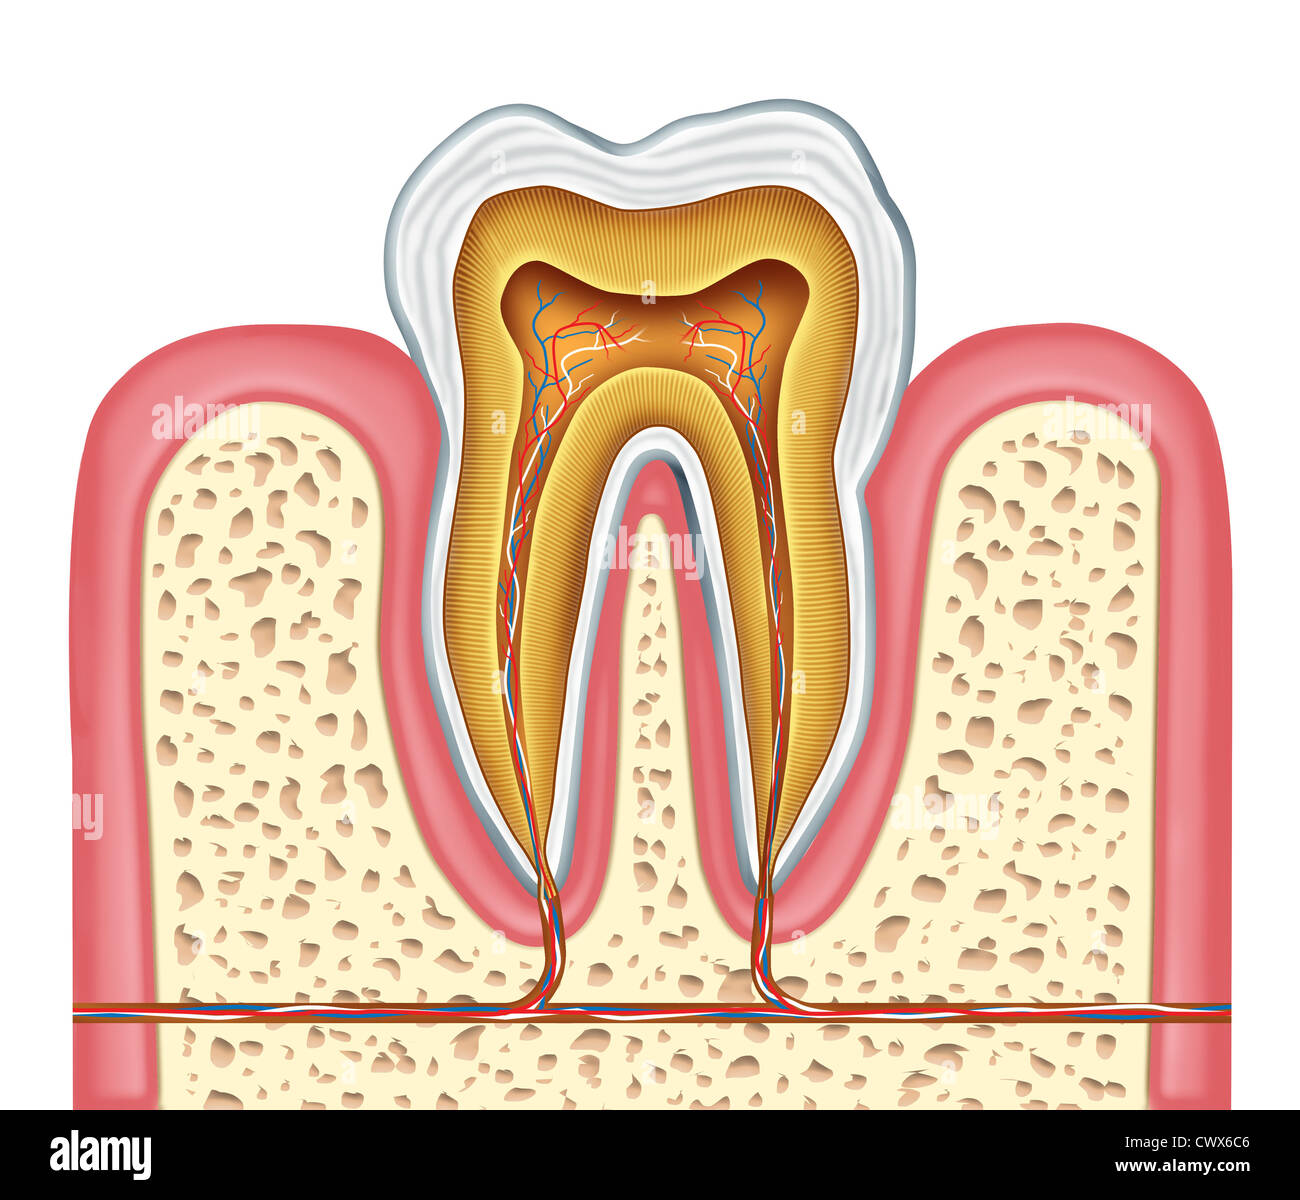 Anatomy of a healthy human tooth diagram as a dentist surgeon anatomy of a healthy human tooth diagram as a dentist surgeon teeth symbol for dental clinic and oral specialist representing dentistry medicine and mouth pooptronica Images